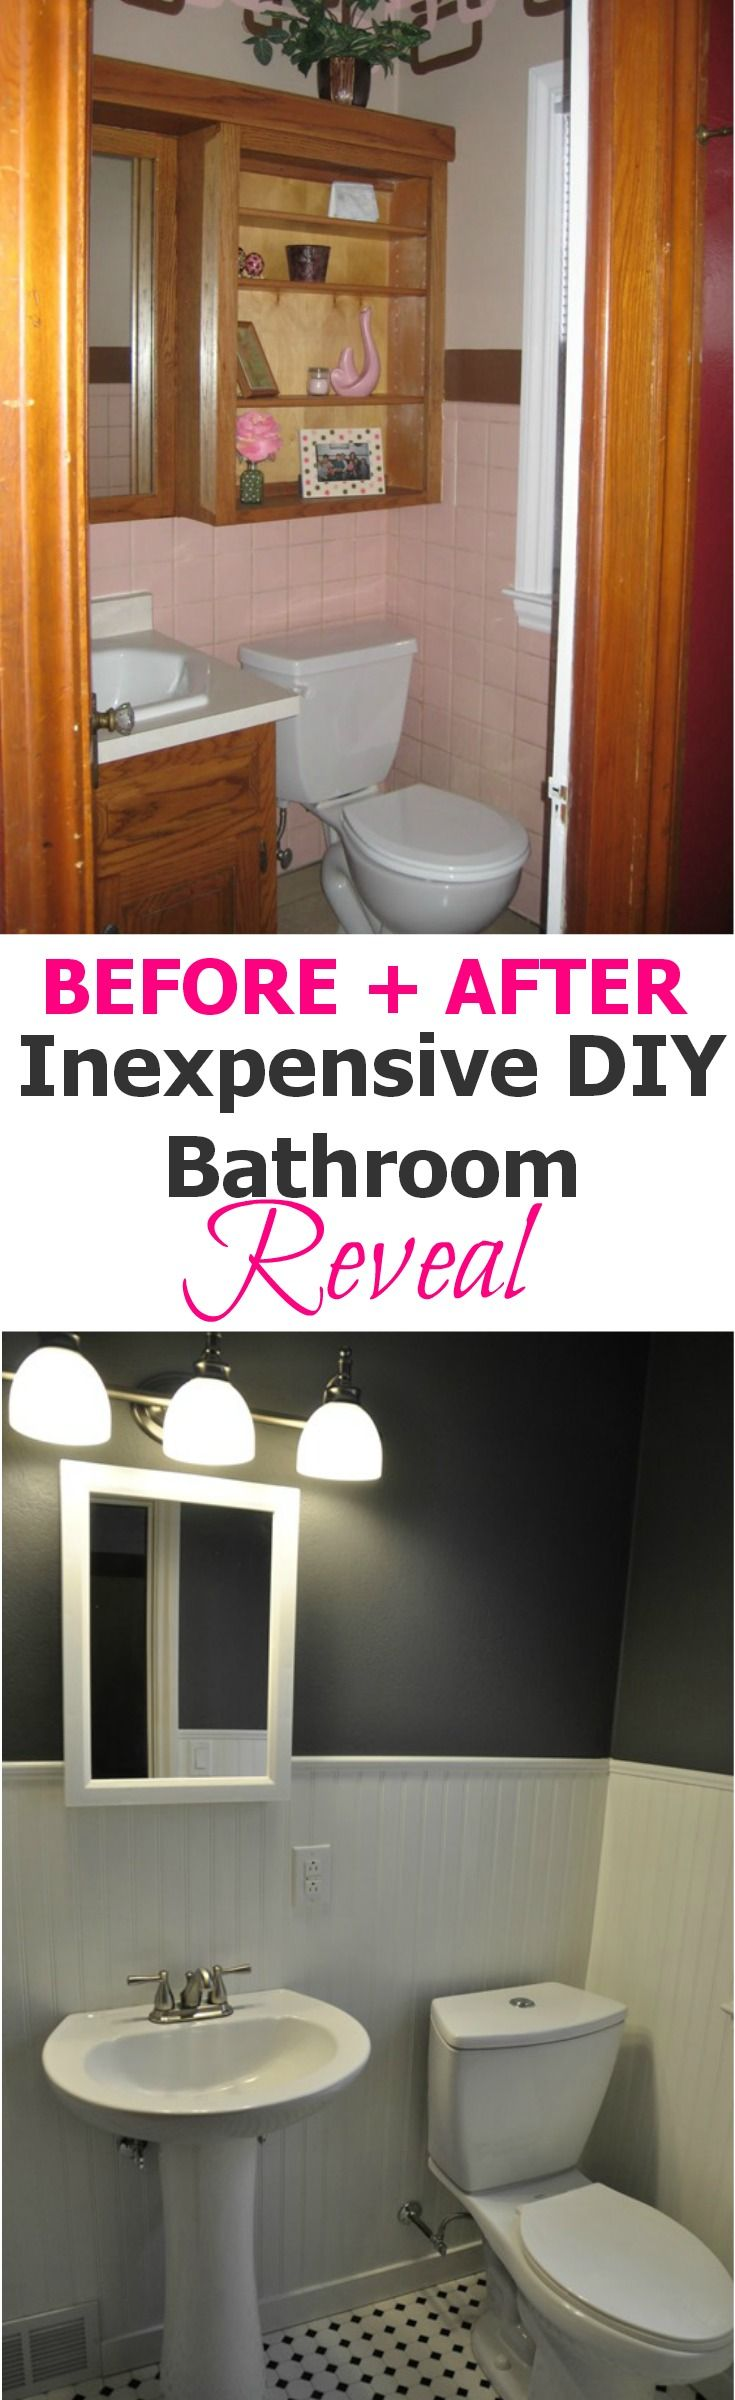 Inexpensive DIY Bathroom Reveal.  Ugly to modern for under $350!